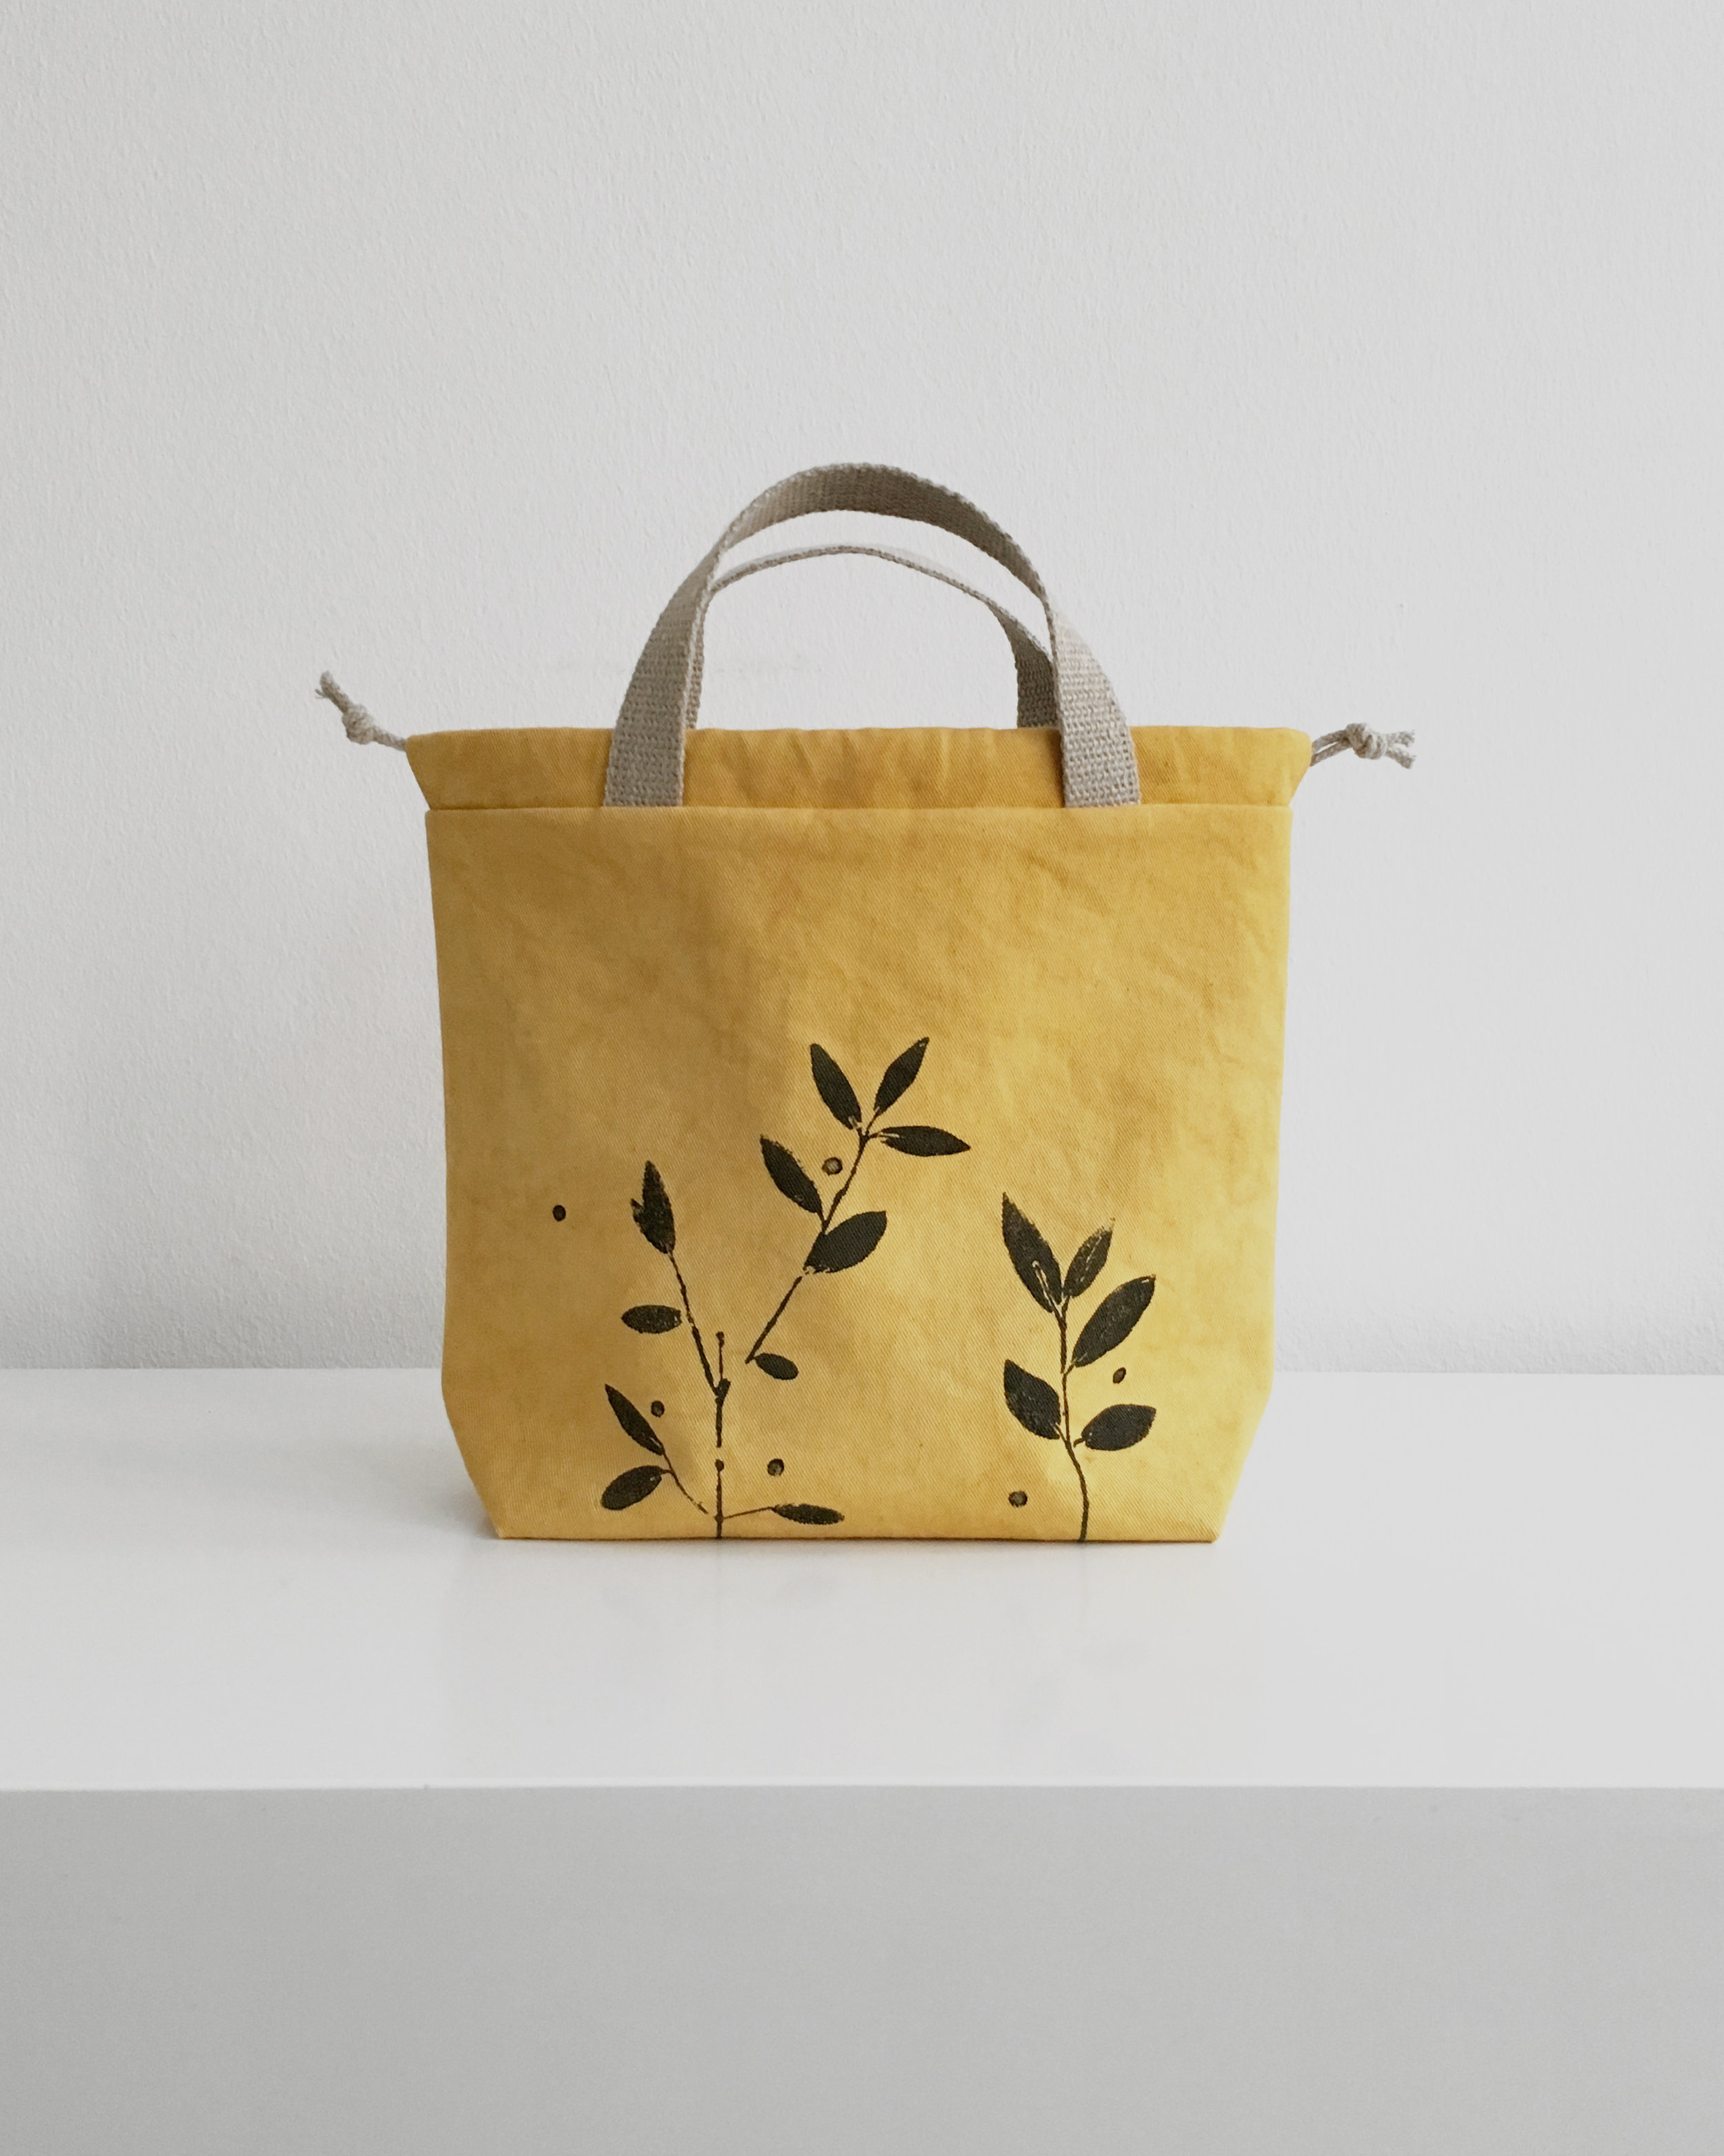 Preorder vegan project bags dyed with plants and stamped by hand